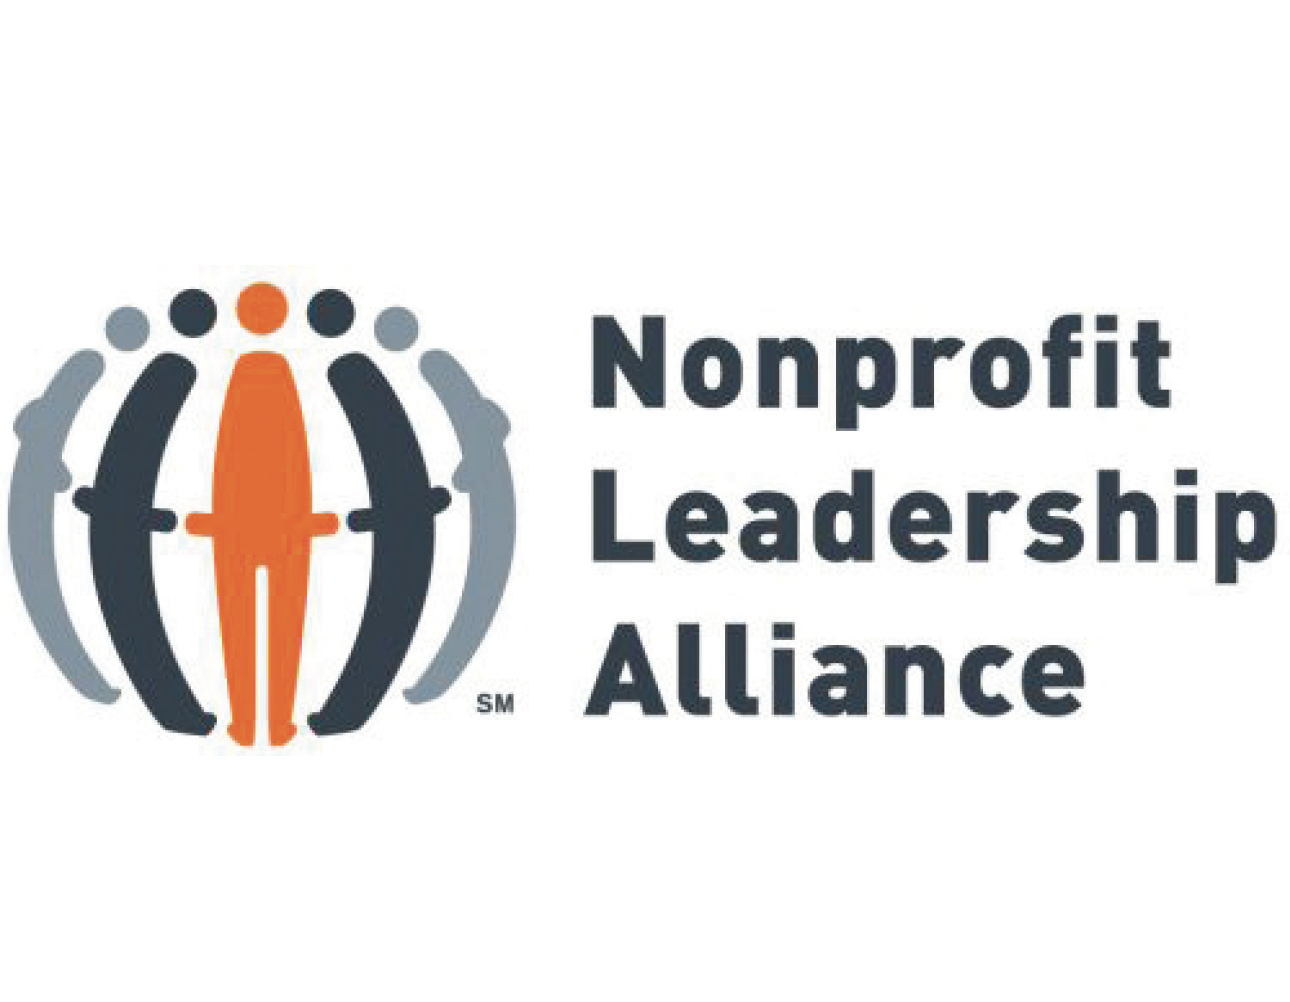 Students from the Nonprofit Leadership Alliance at UNI won several awards for their work at the Alliance Management Institute's national conference in Florida last January.